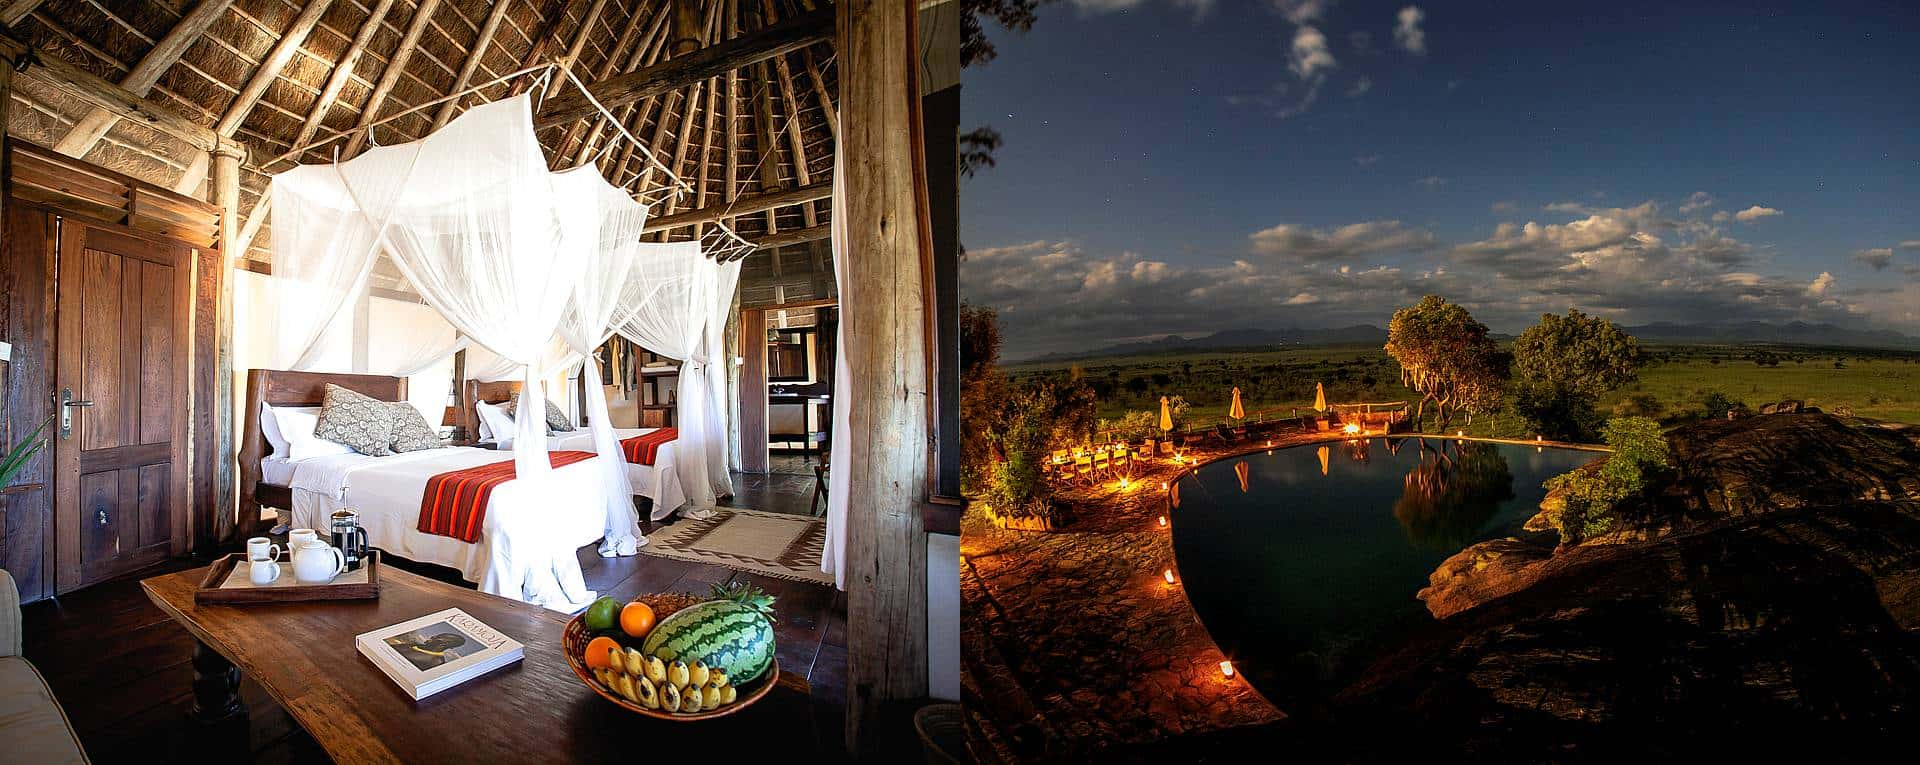 Where To Stay At Kidepo Valley